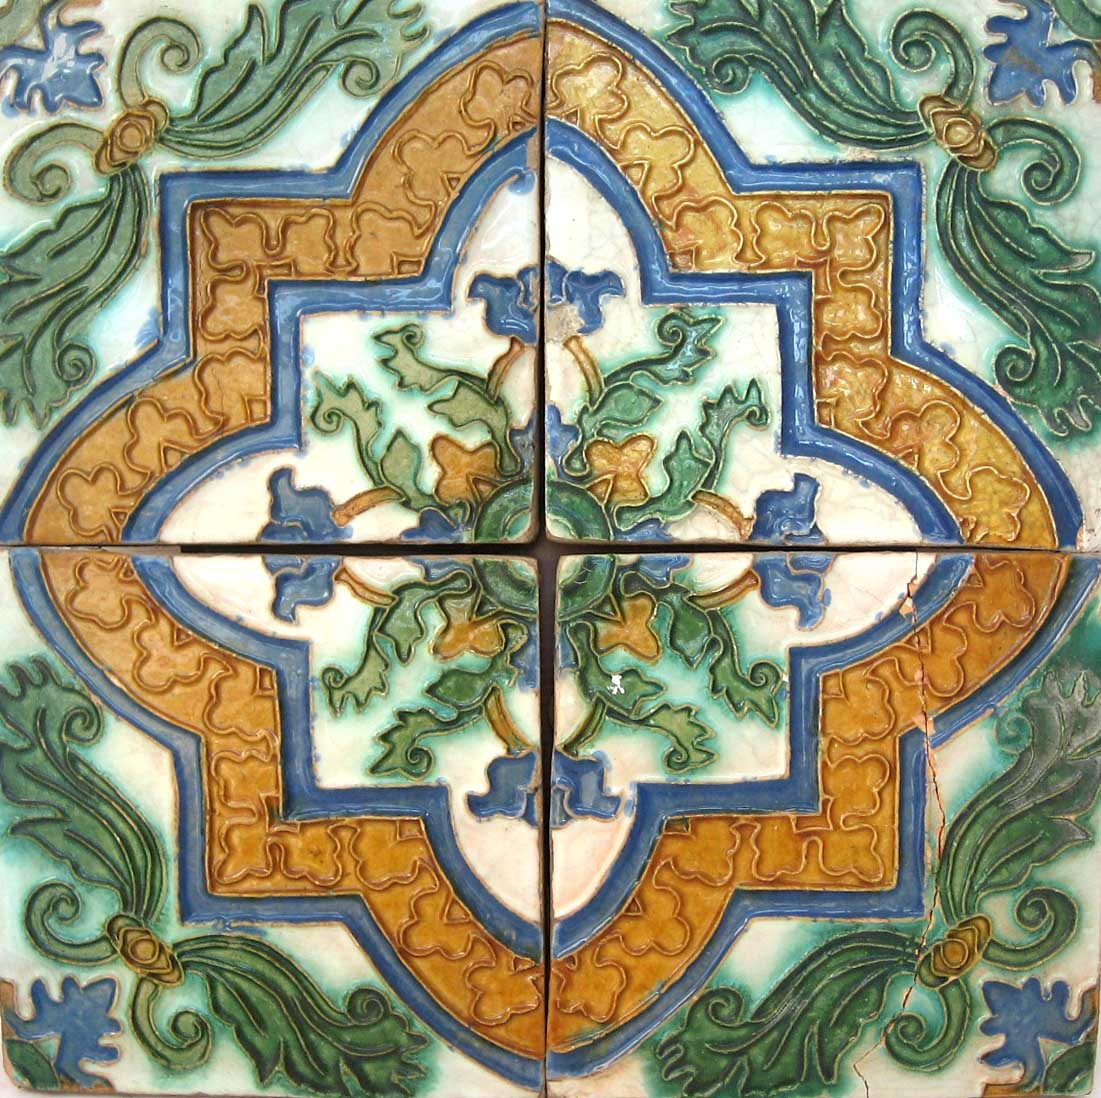 Some motifs were formed with a single tile and others with four tiles.